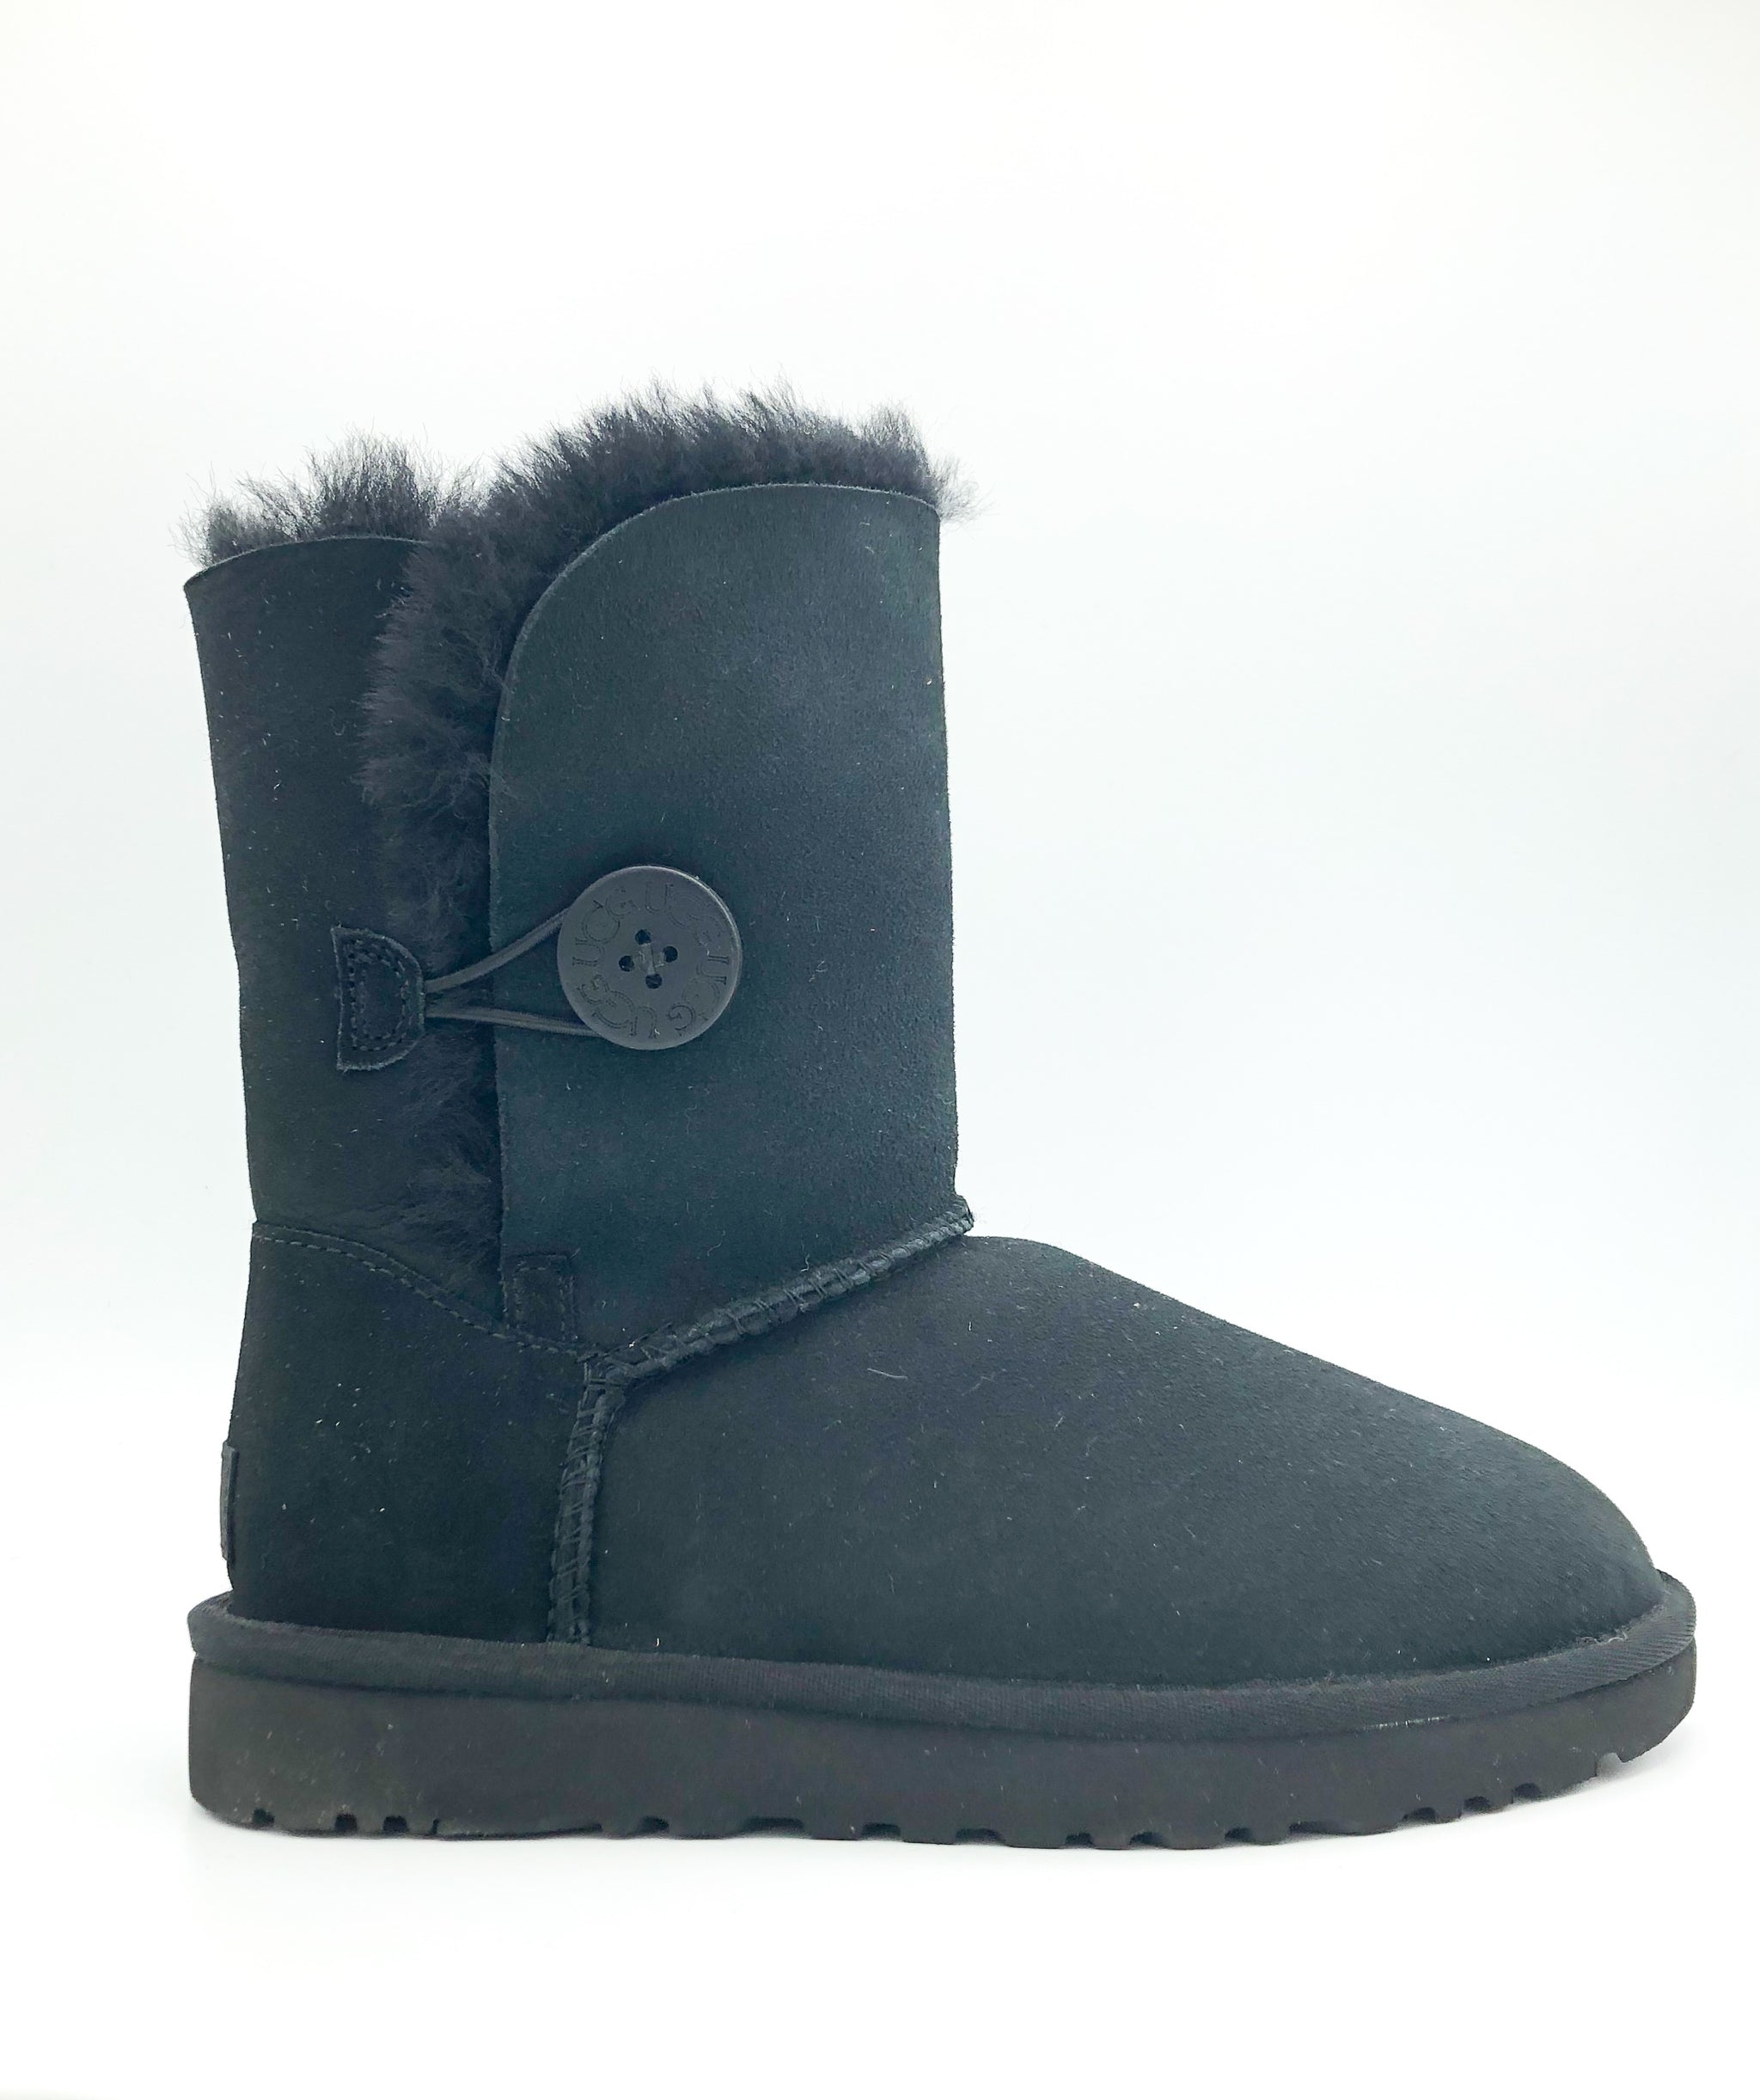 UGG - BAILEY BUTTON II IN BLACK